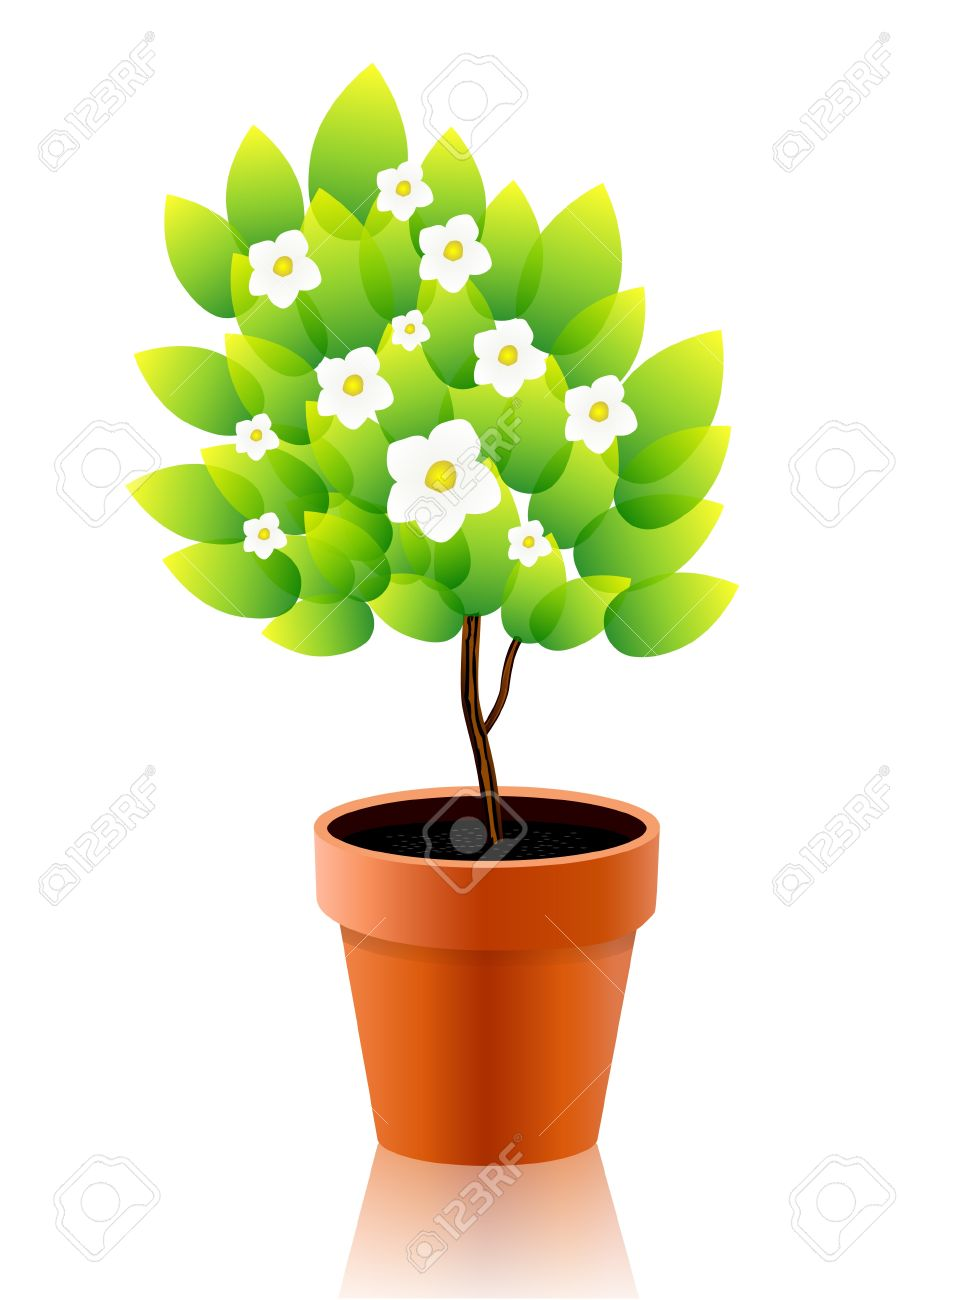 Vector illustration of growing plant with flower in pot Stock Vector - 9231797